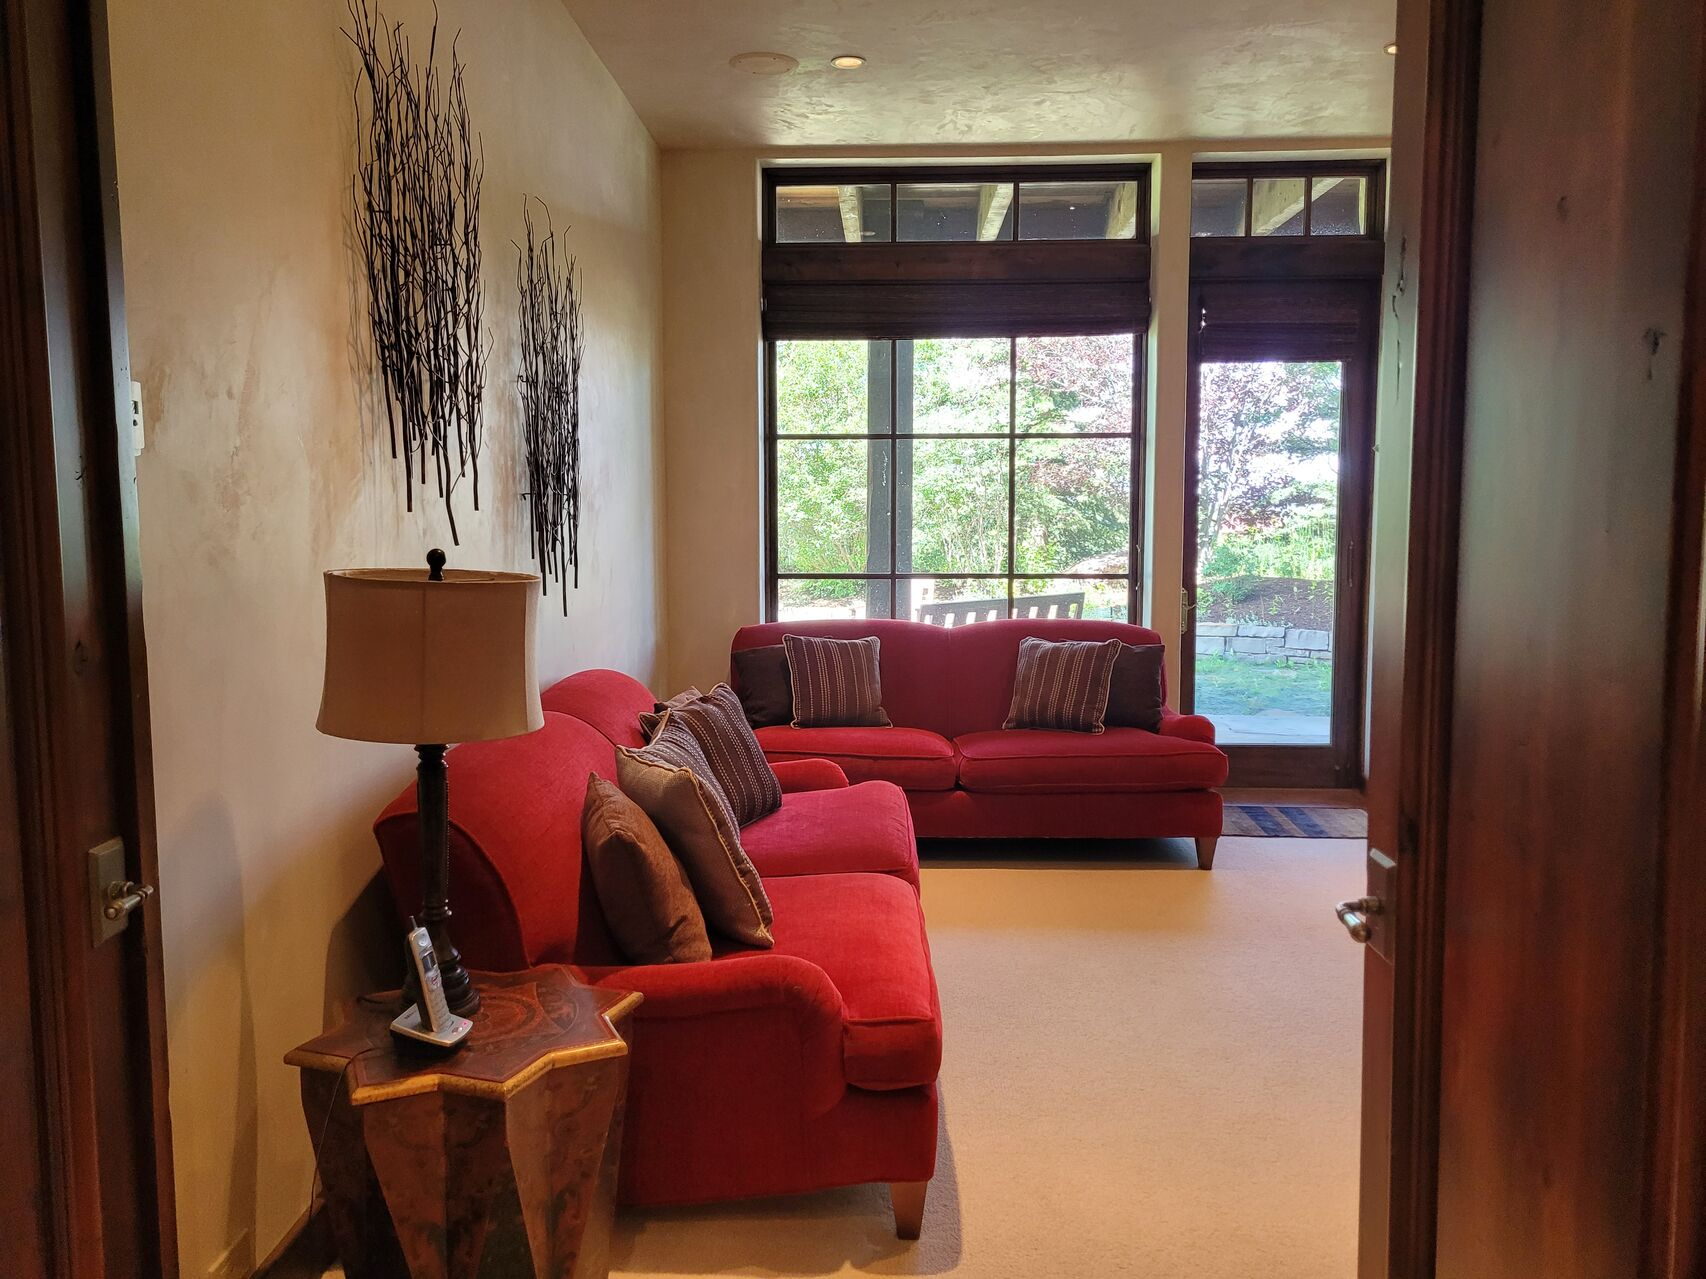 Living room with red couches and large window